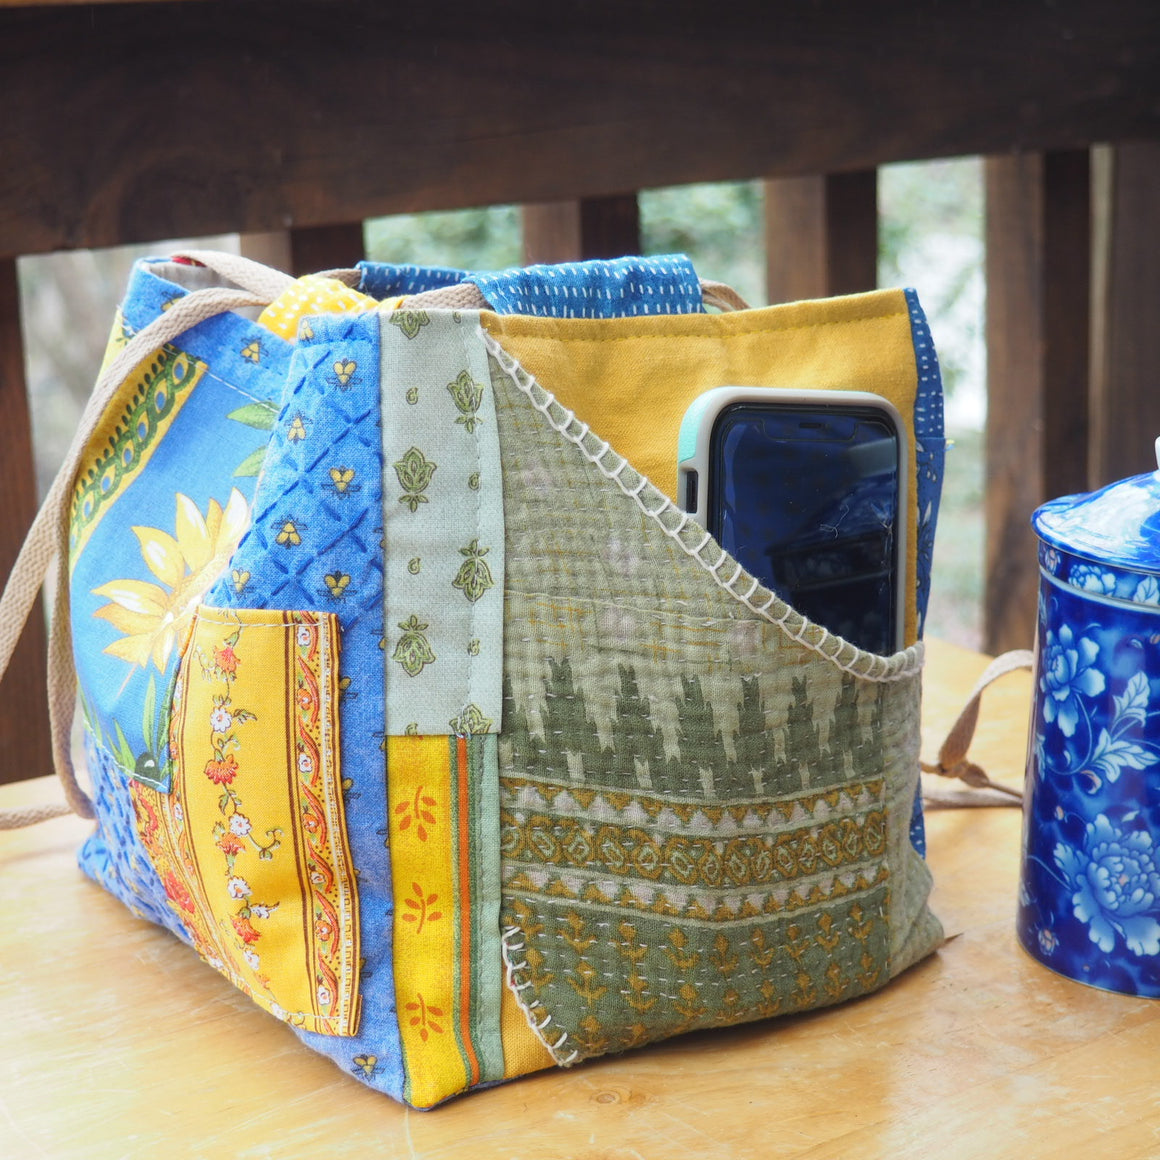 Provence Pouch, Japanese Rice Pouch, Komebukuro Bag, Pocket, Patchwork and Hand-stitched